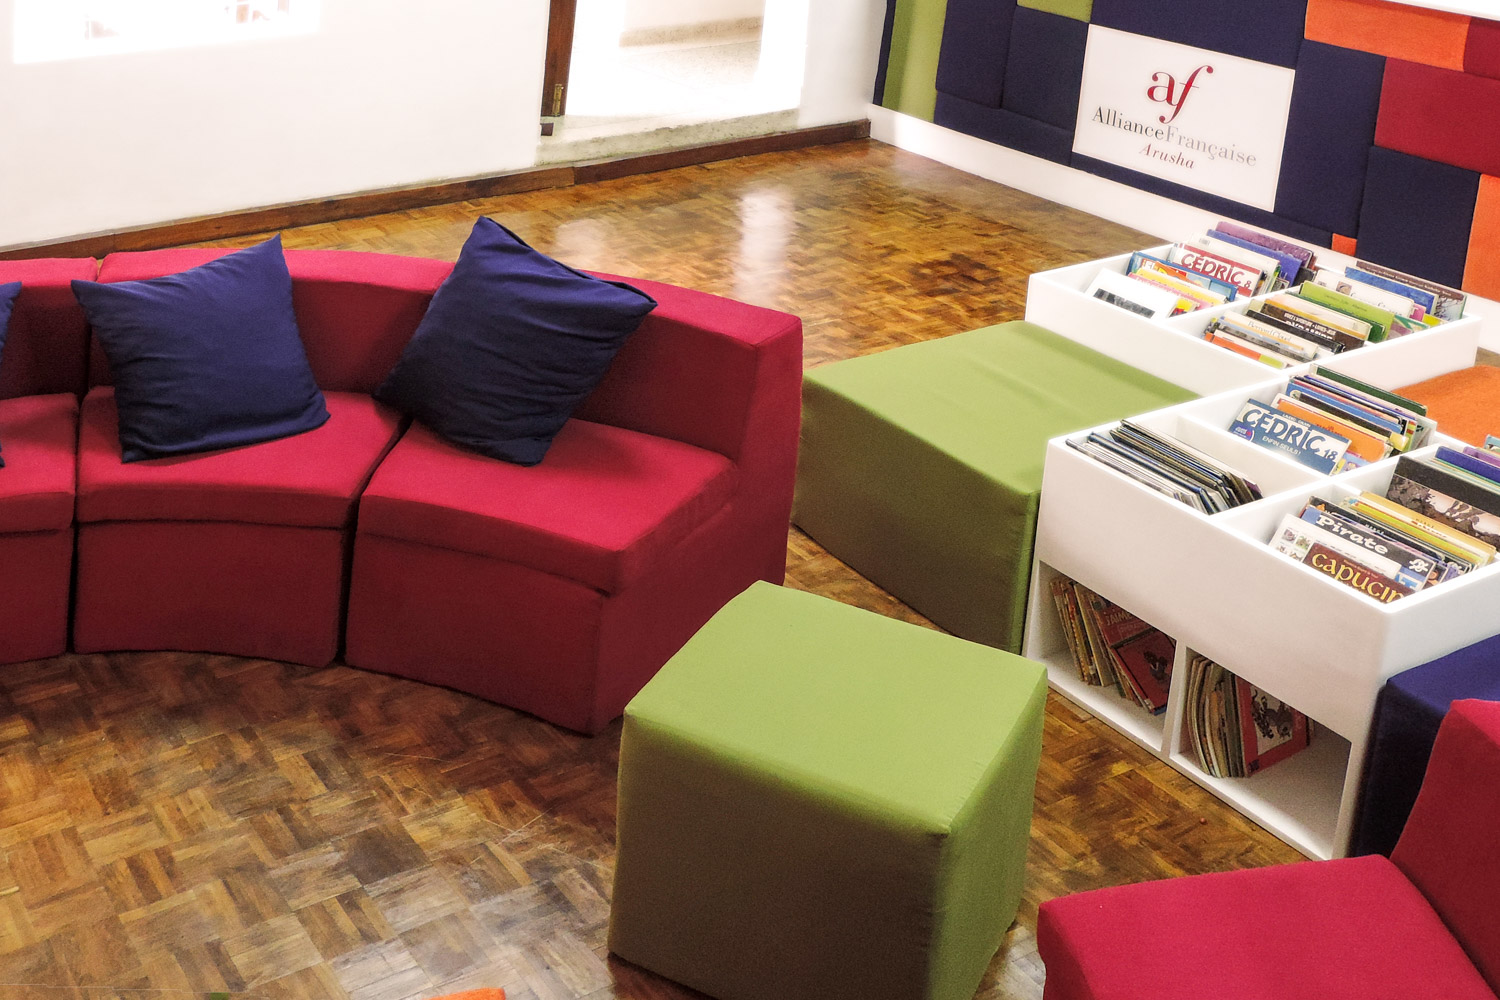 library seating, cushions and pouffes